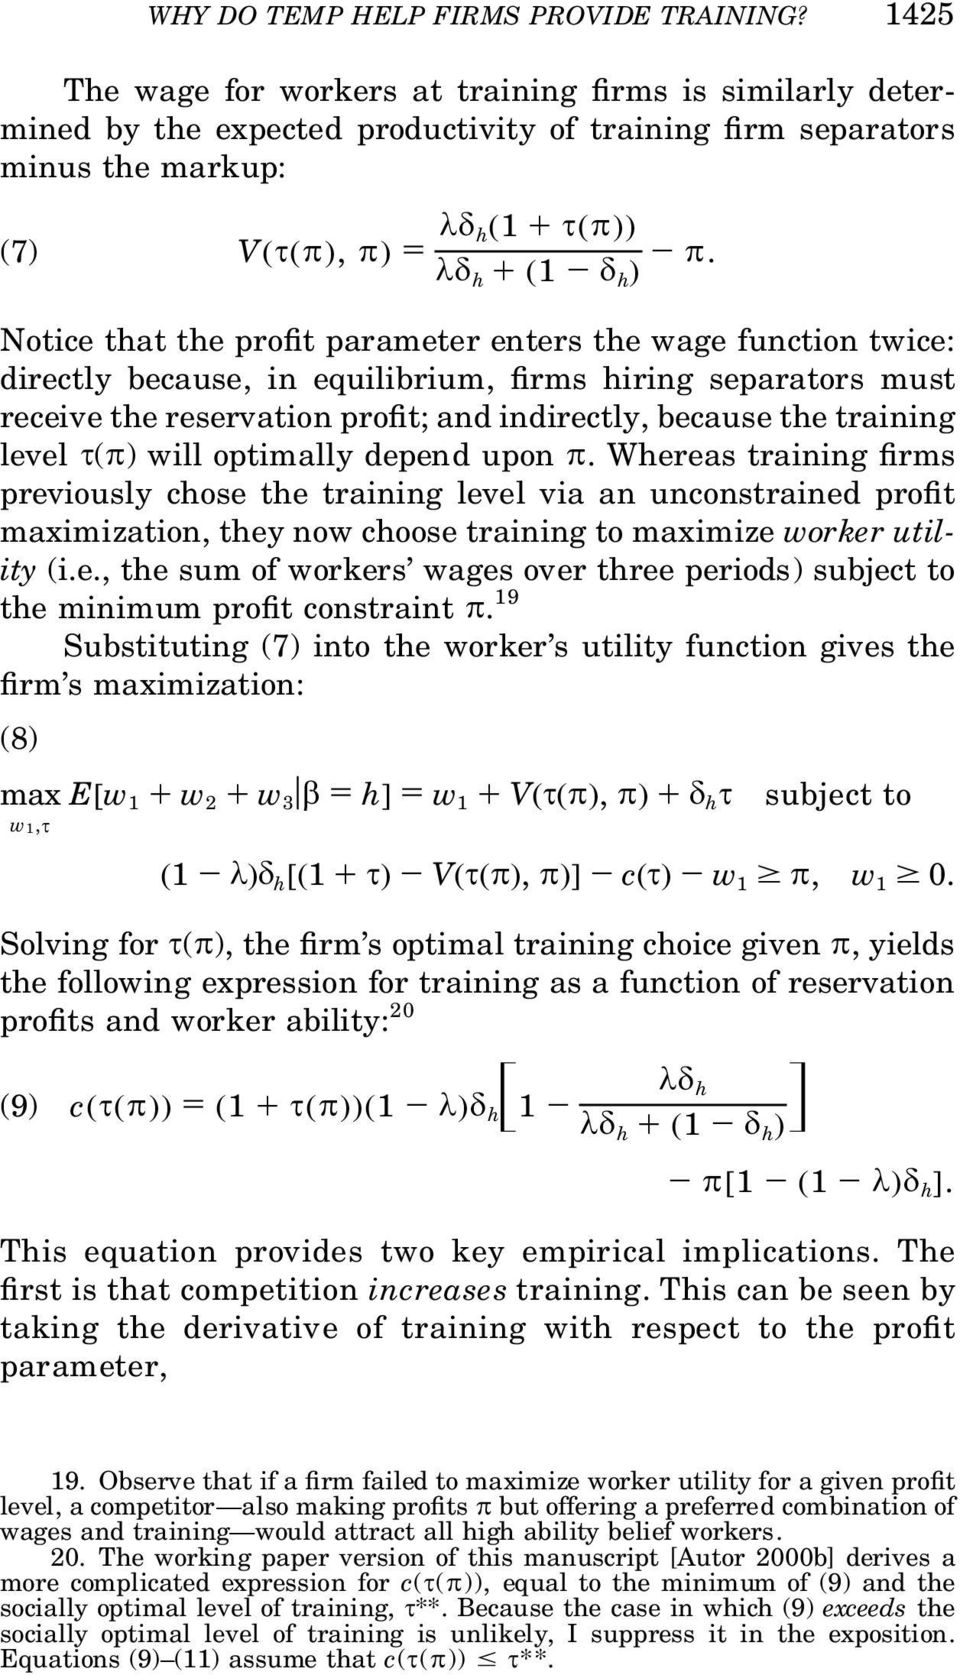 Notice that the pro t parameter enters the wage function twice: directly because, in equilibrium, rms hiring separators must receive the reservation pro t; and indirectly, because the training level